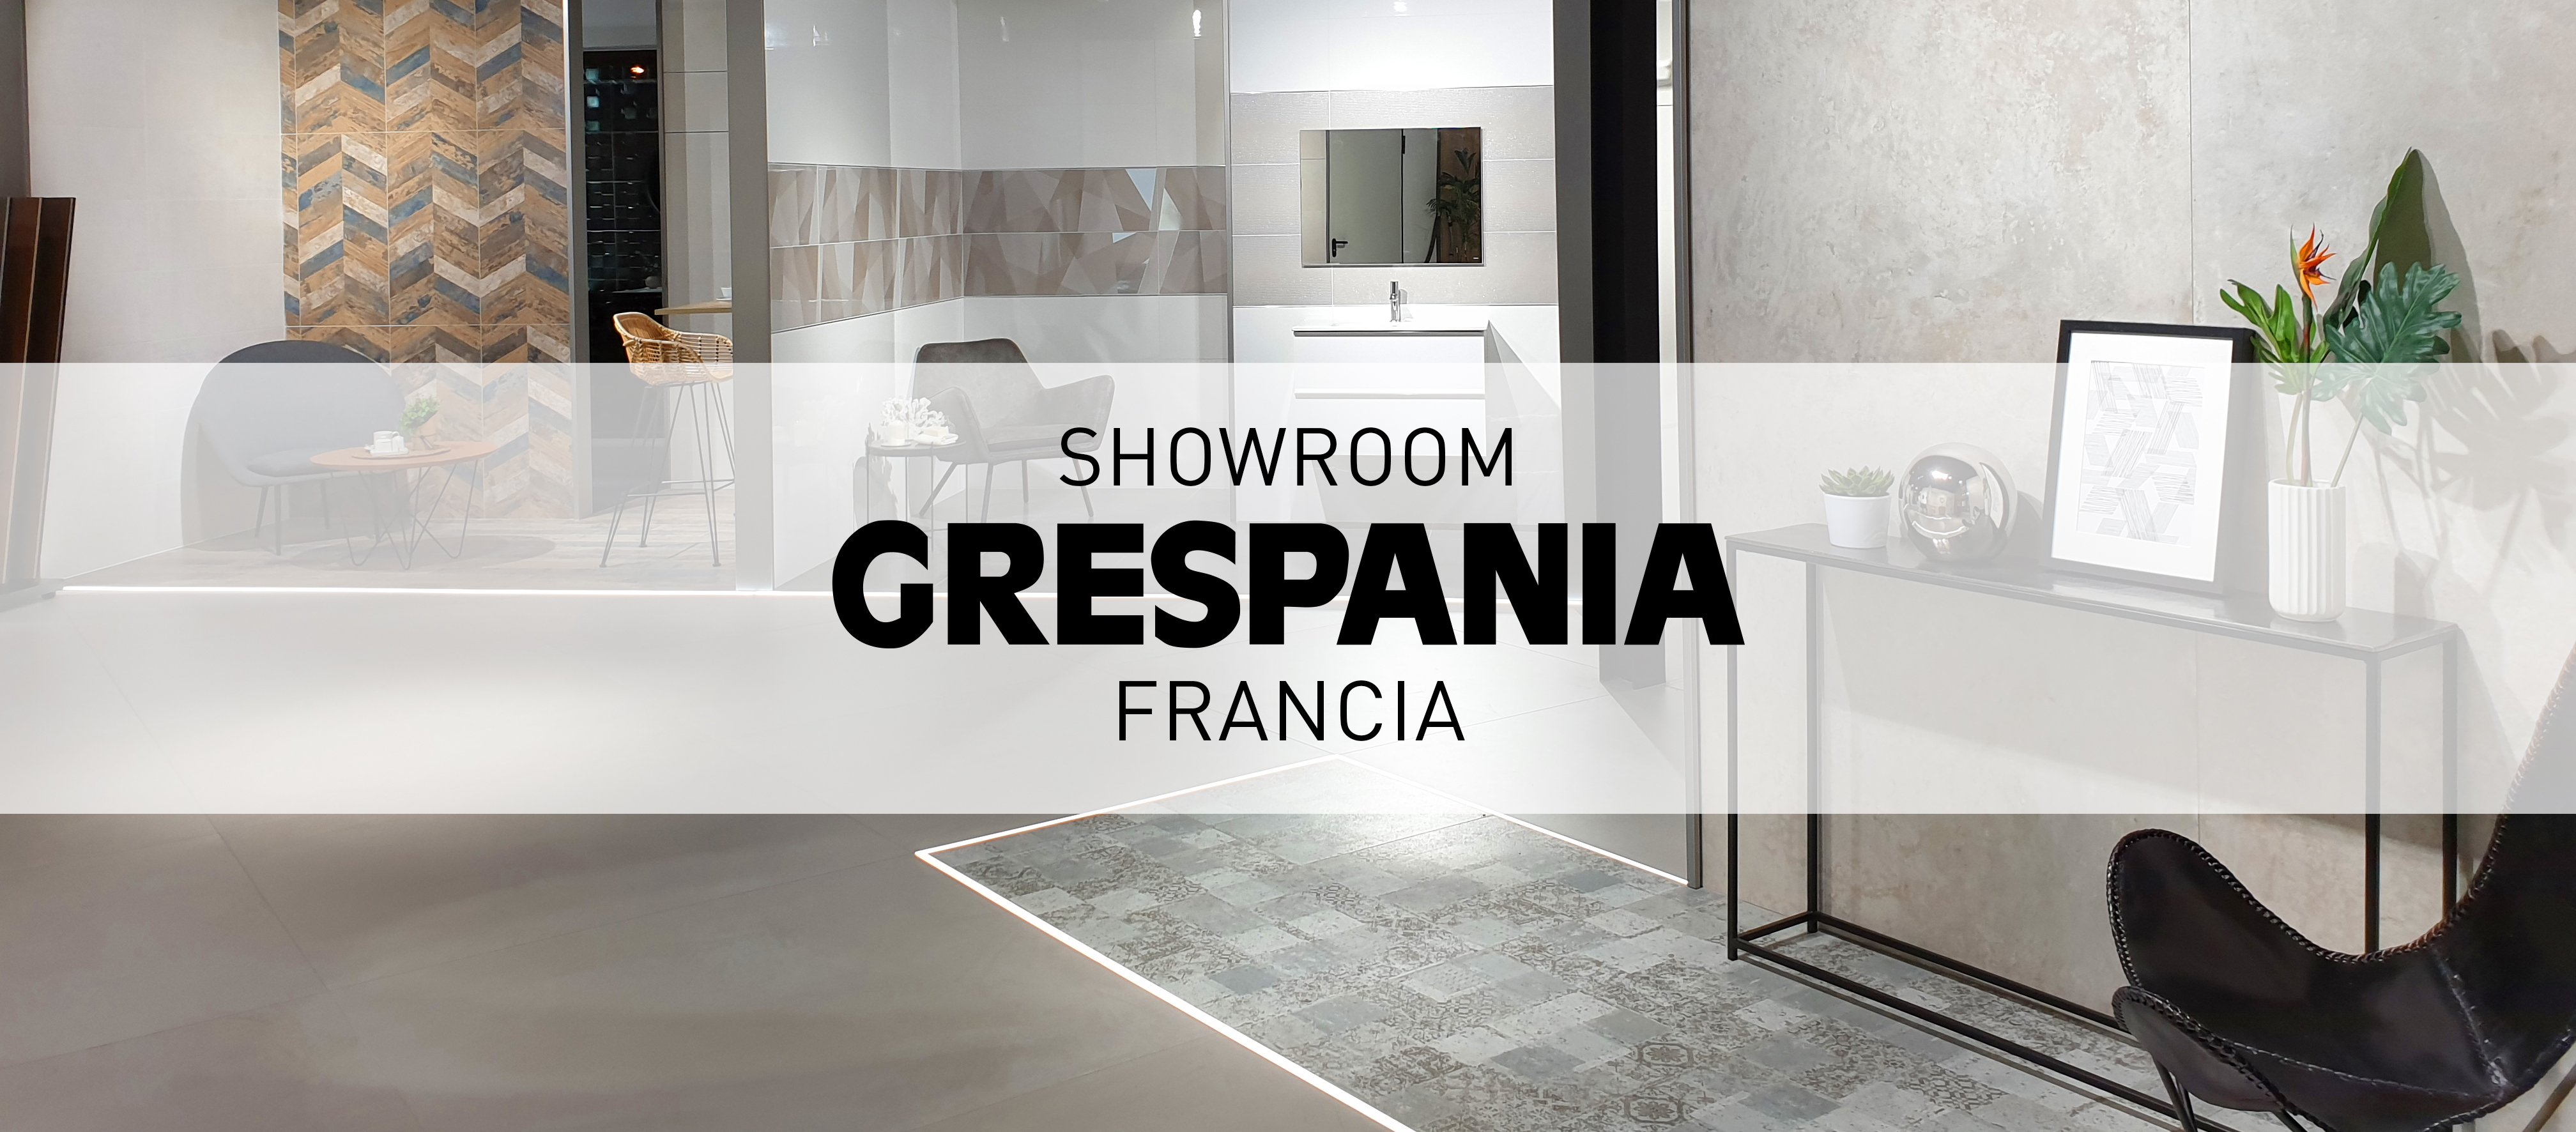 GRESPANIA FRANCIA RENUEVA SU SHOWROOM